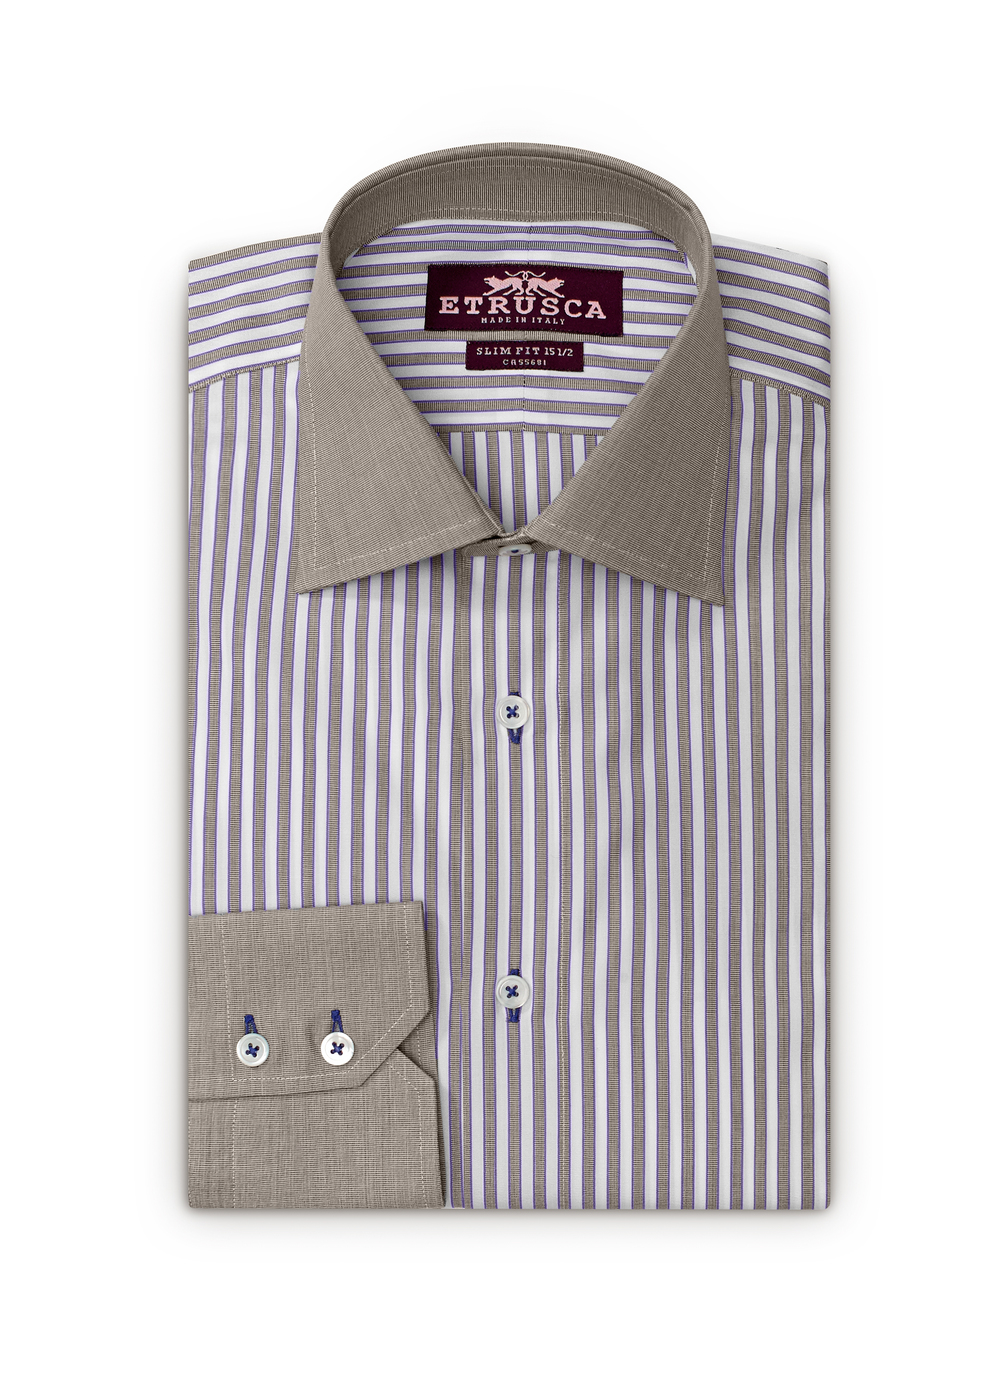 Etrusca-Collezione-Tre-Giorno-Brown-Purple-Stripes-Brown-Collar-Cuff-Folded-001-HR.jpg